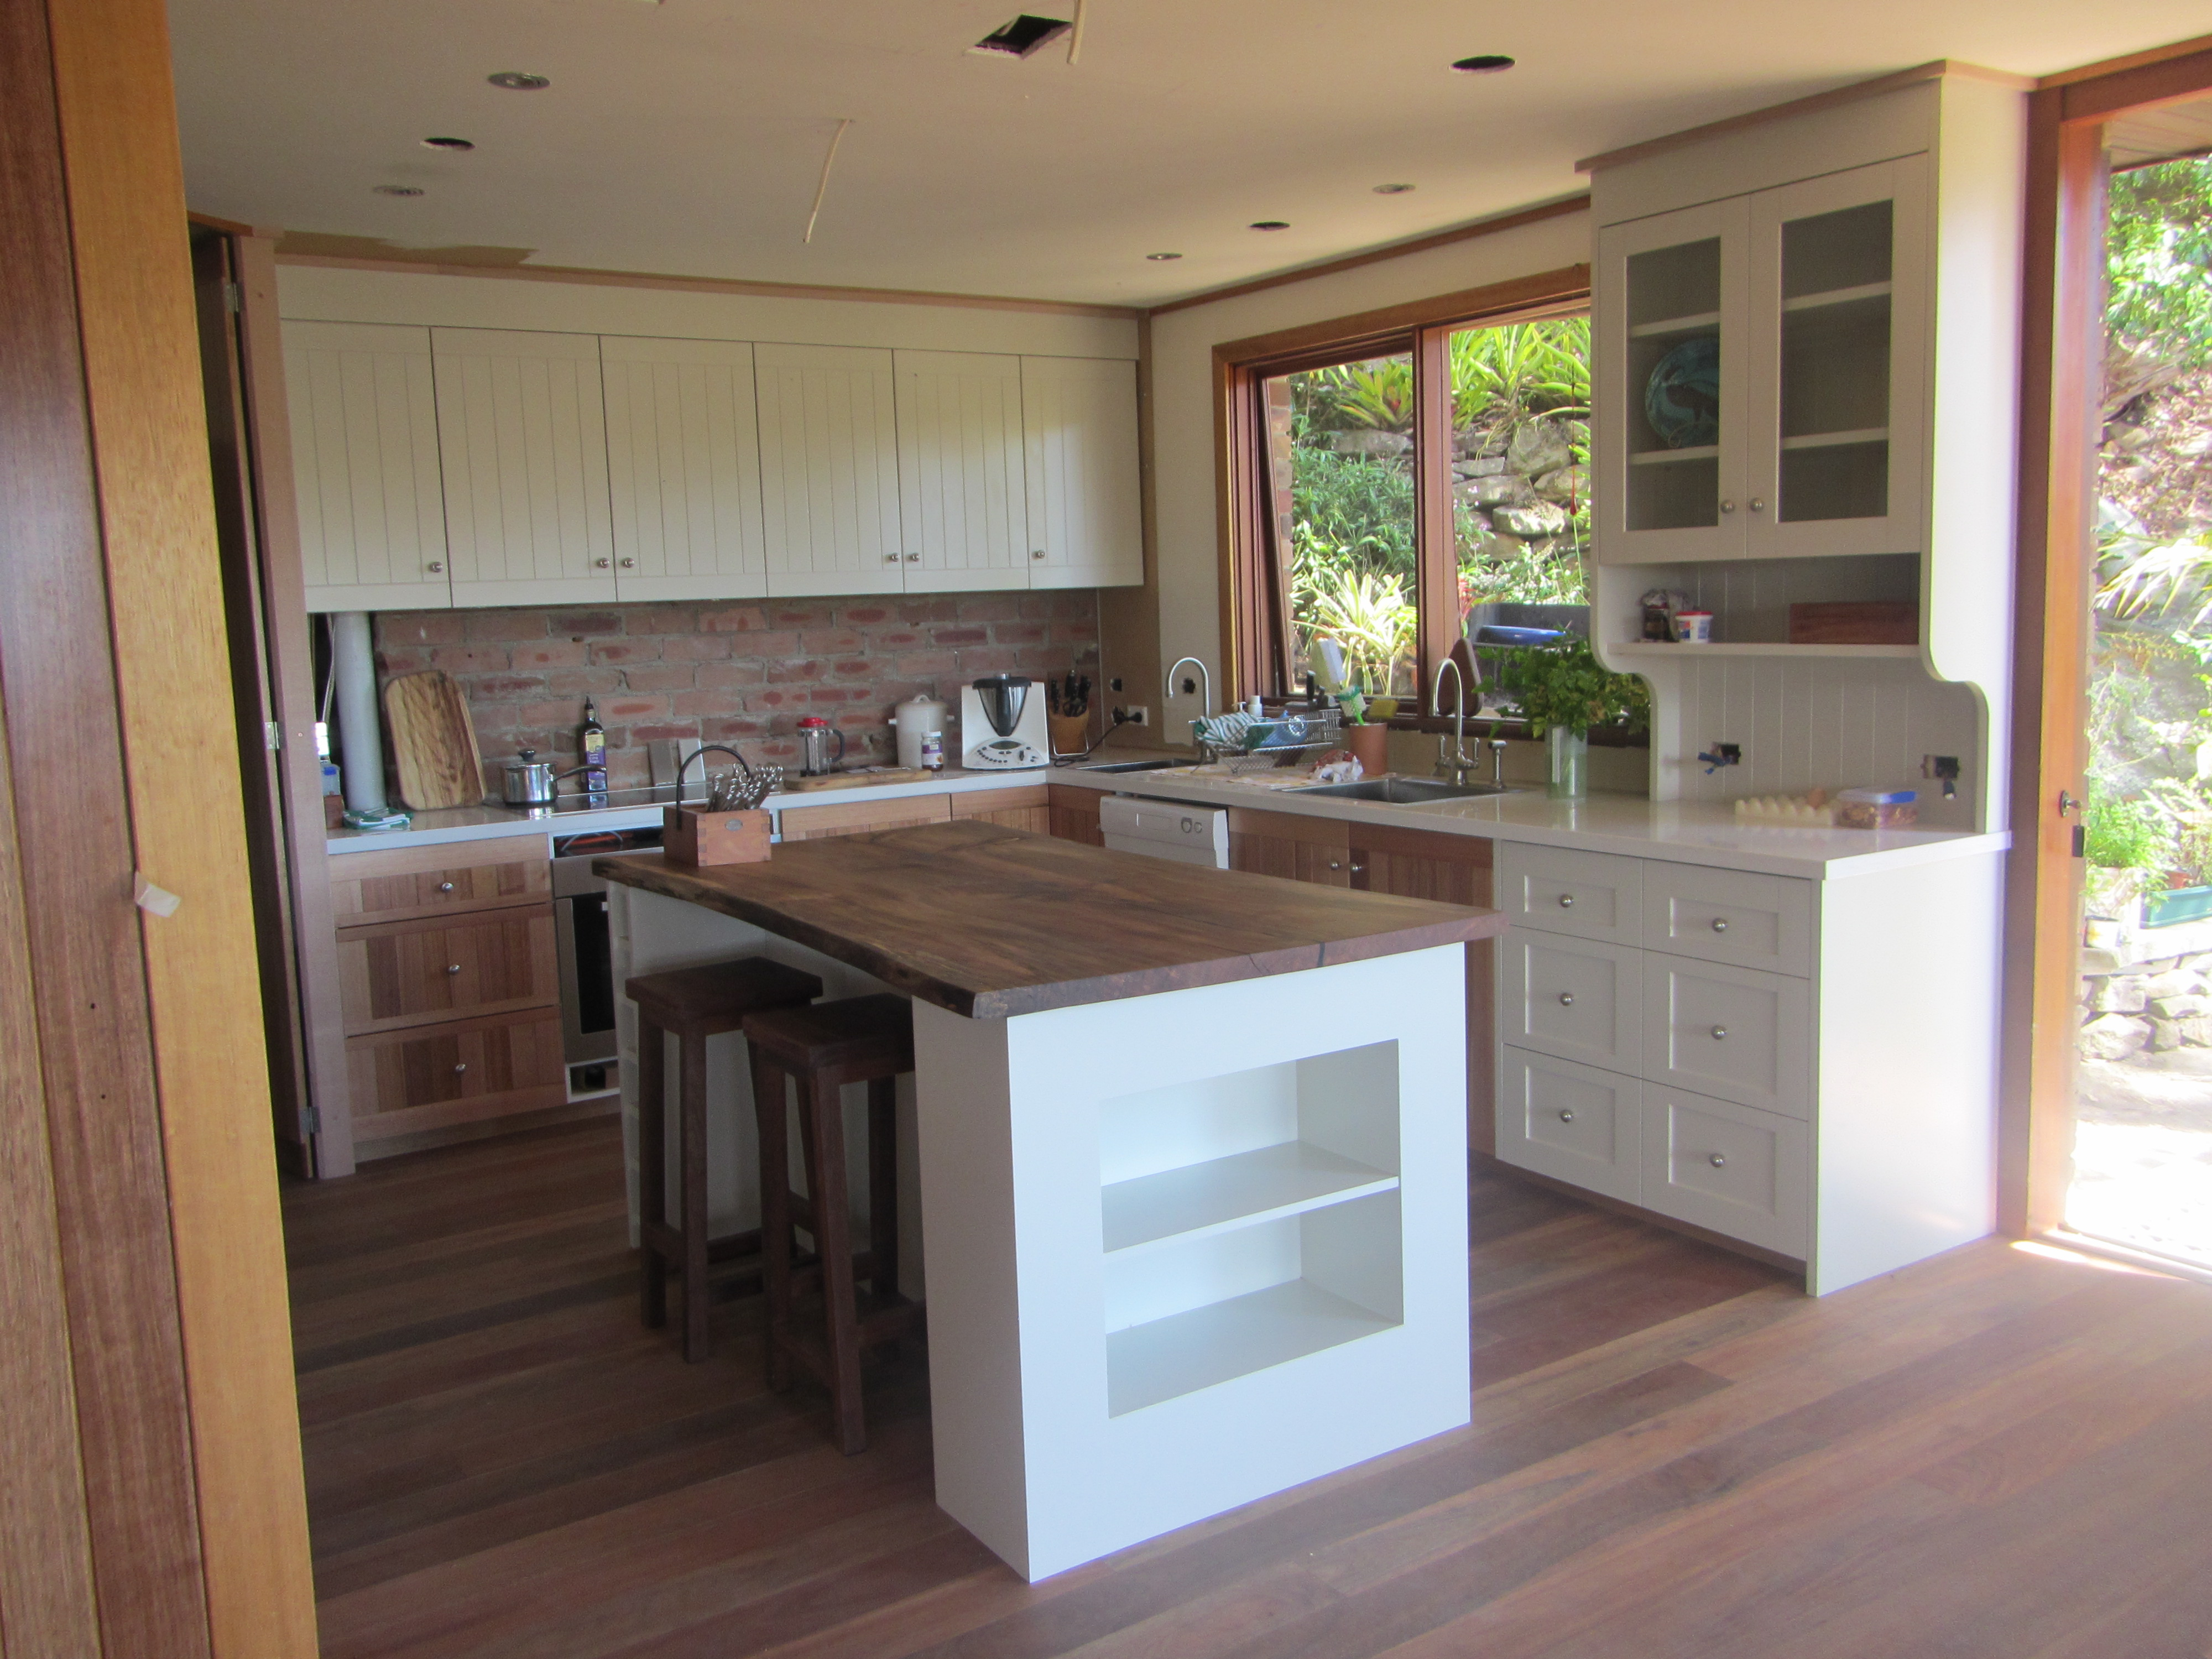 Painting Kitchen Cupboards Painting Timber Cupboards Ordinary 2 Extraordinary